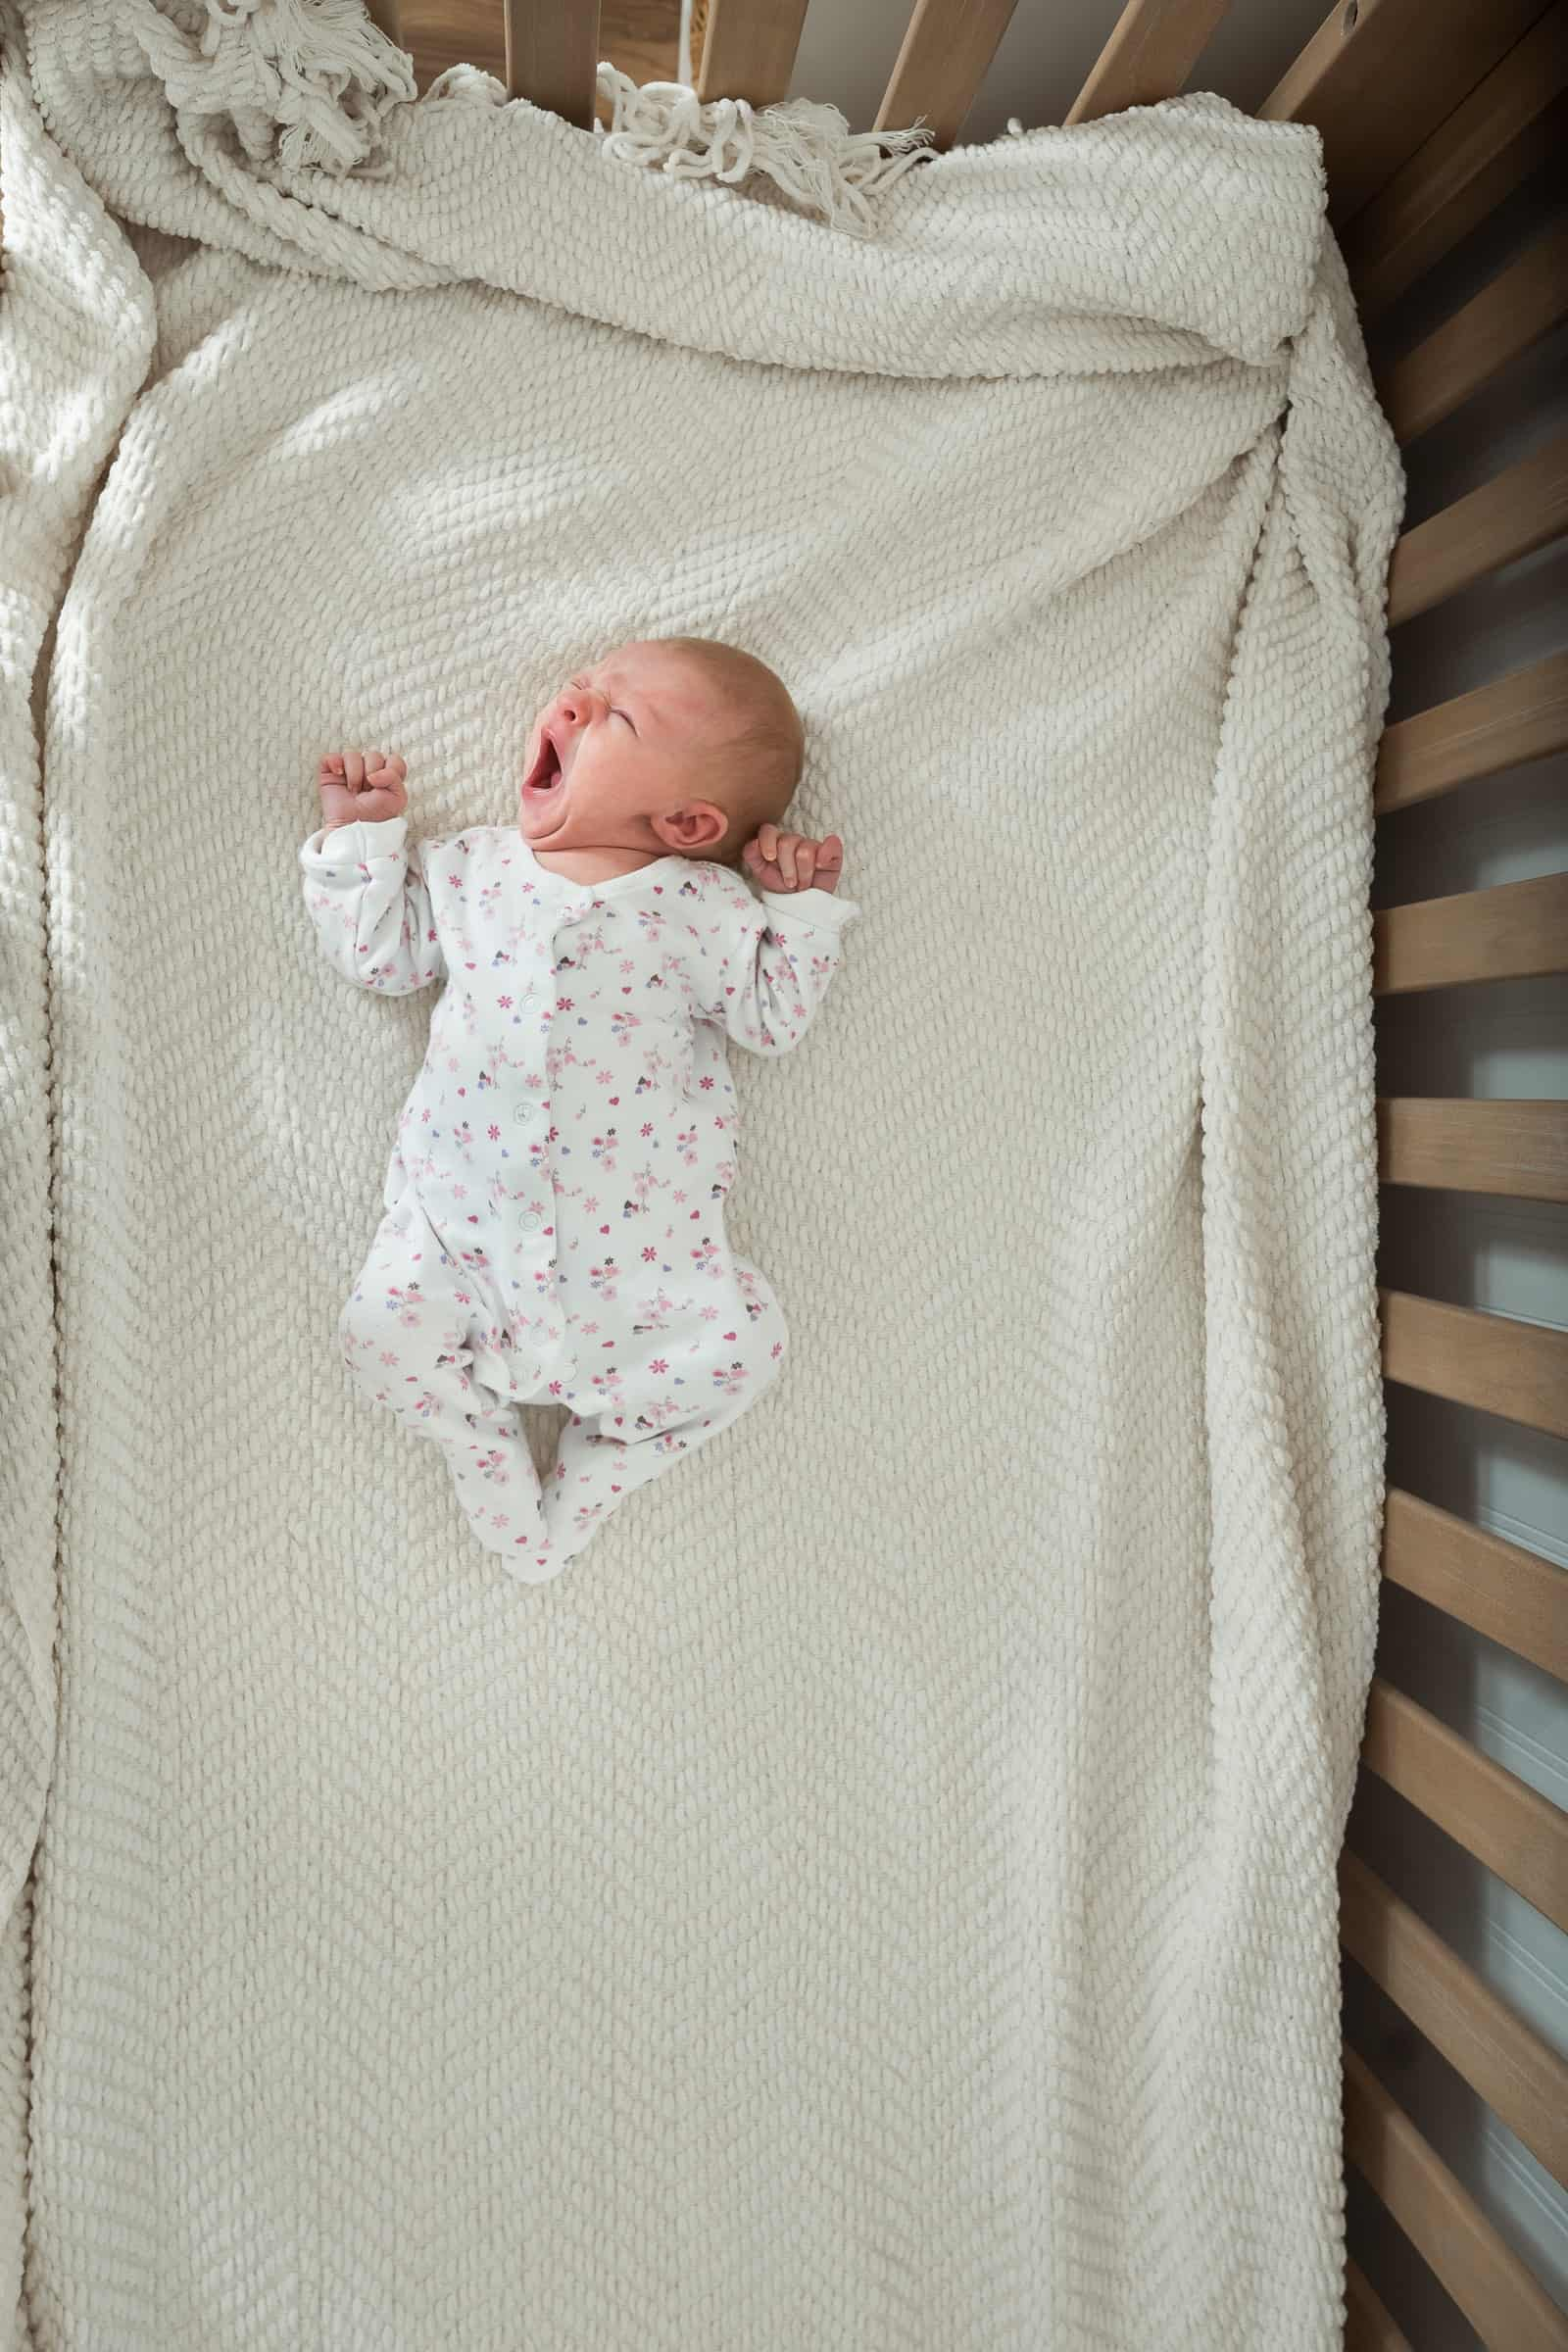 baby laying in crib yawning